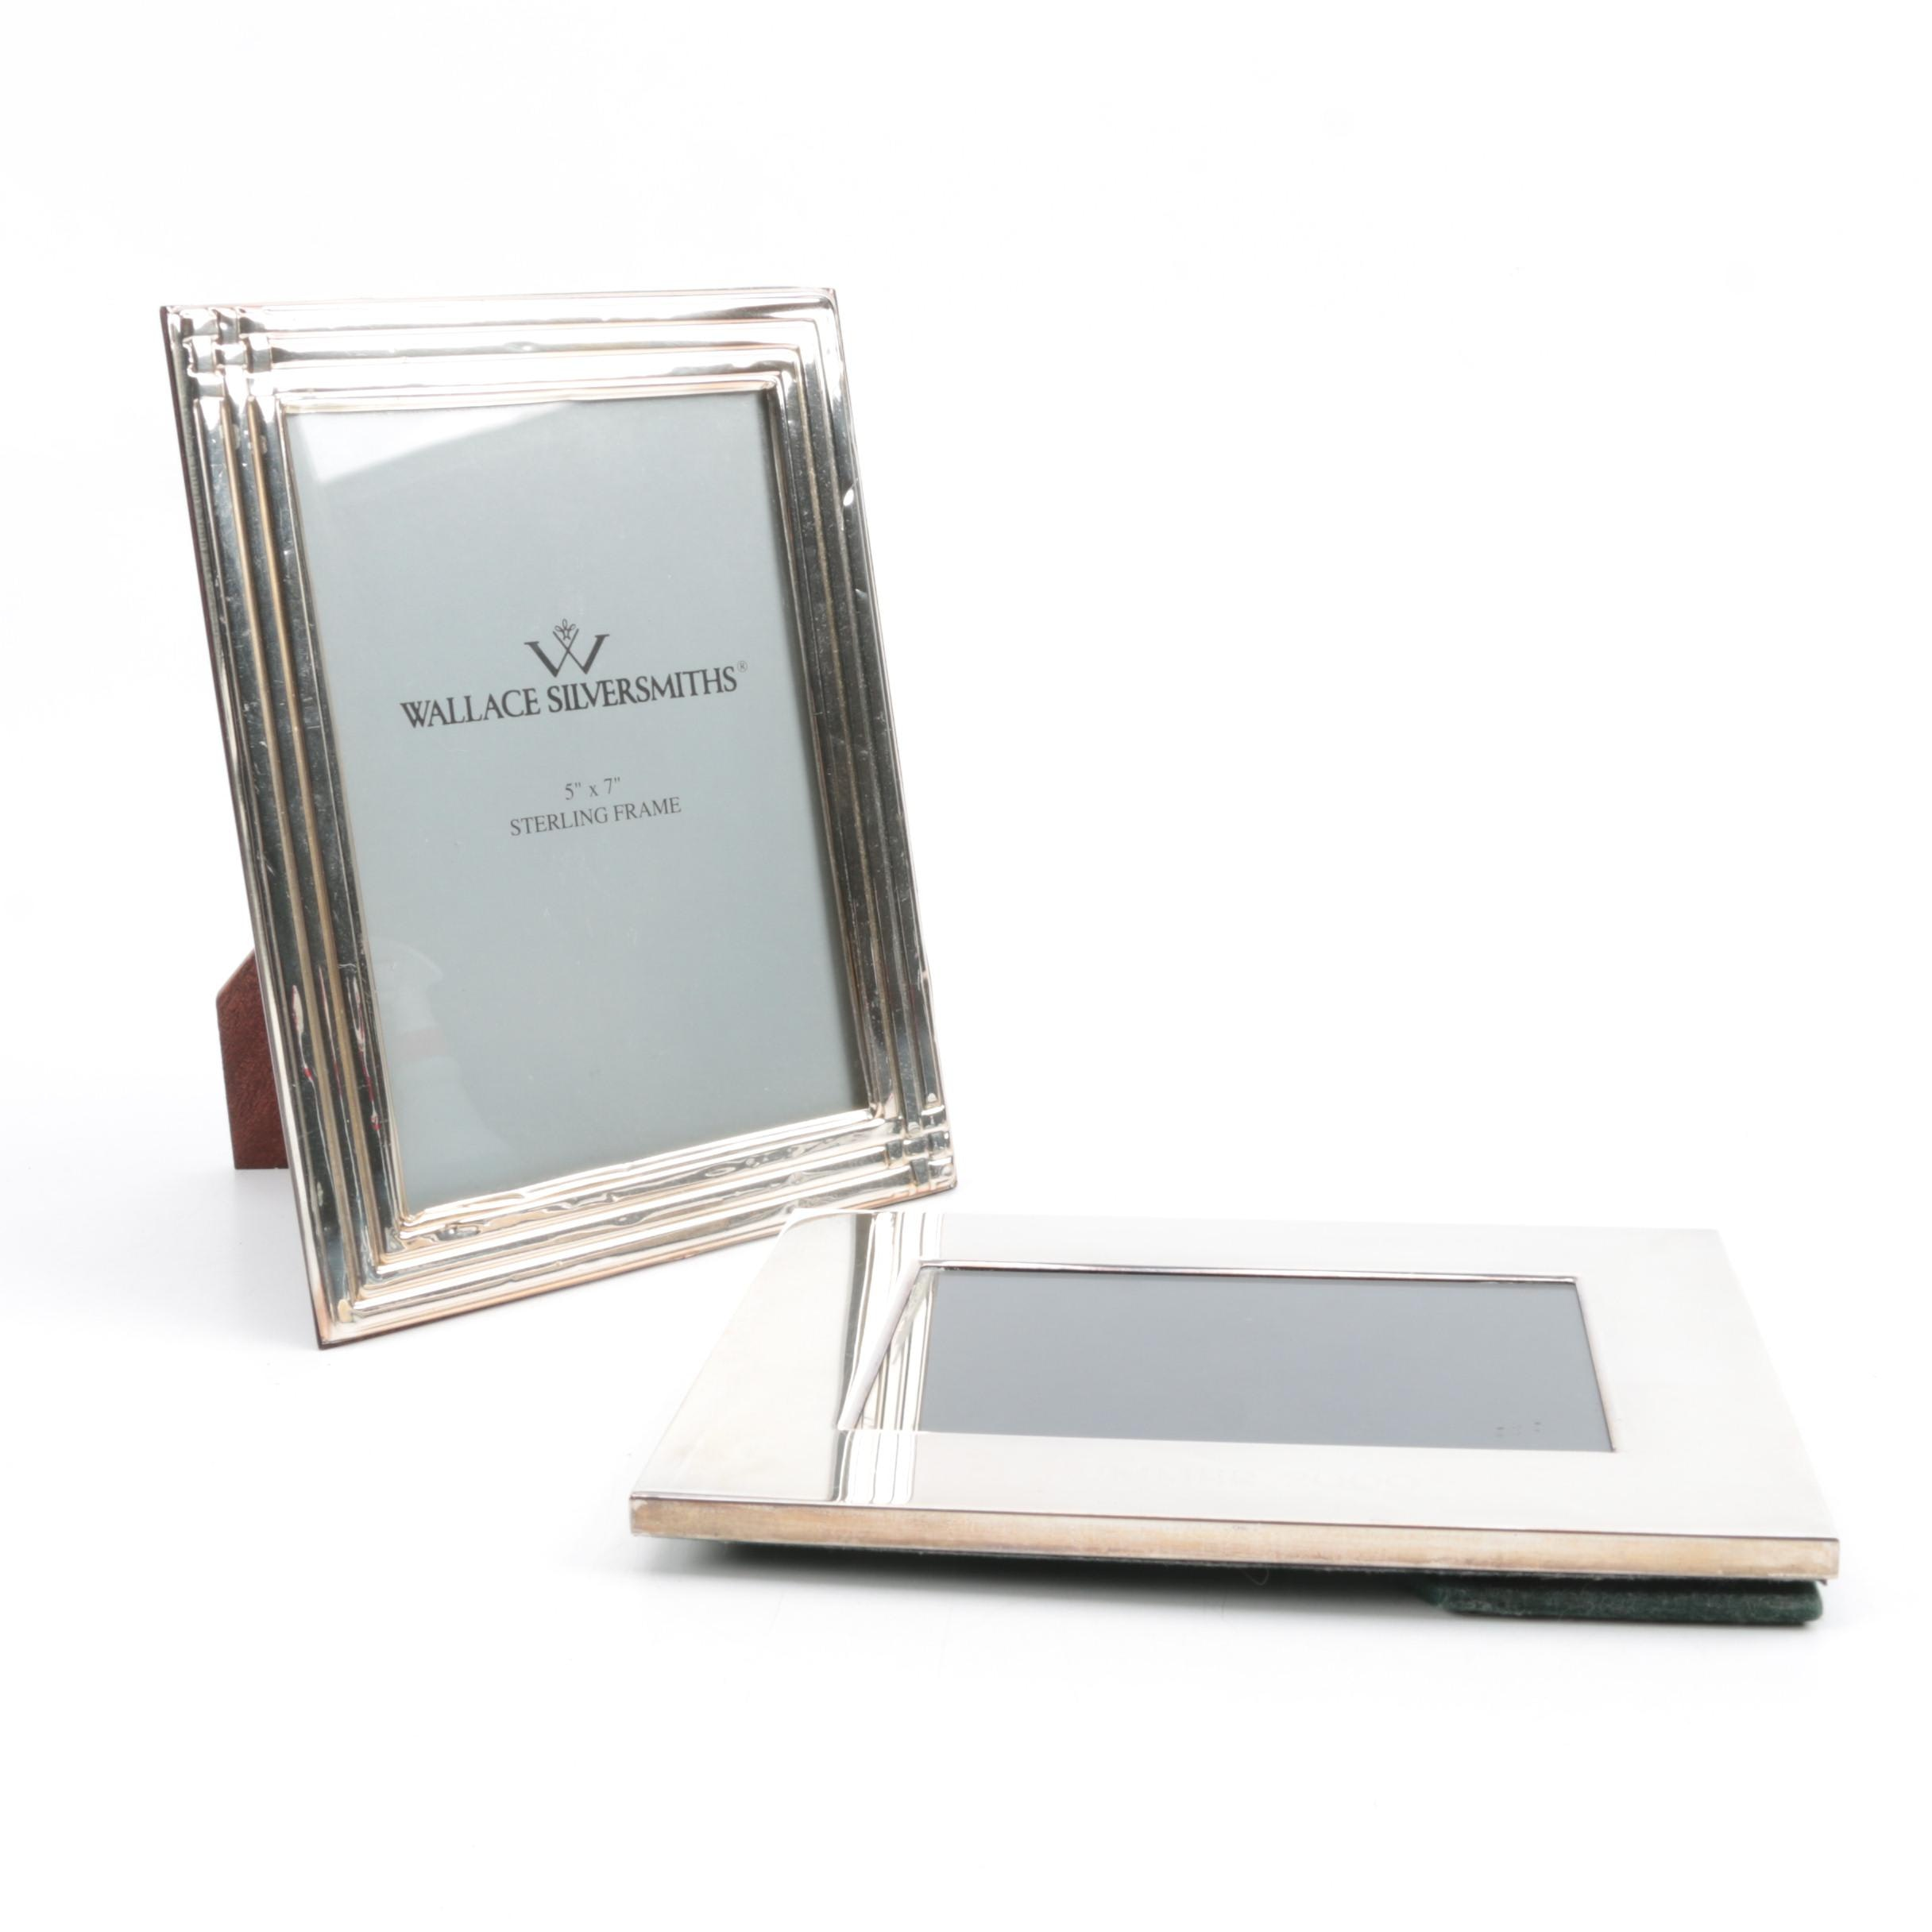 Wallace Silversmiths Sterling Silver Photograph Frame and Other Silver Frame